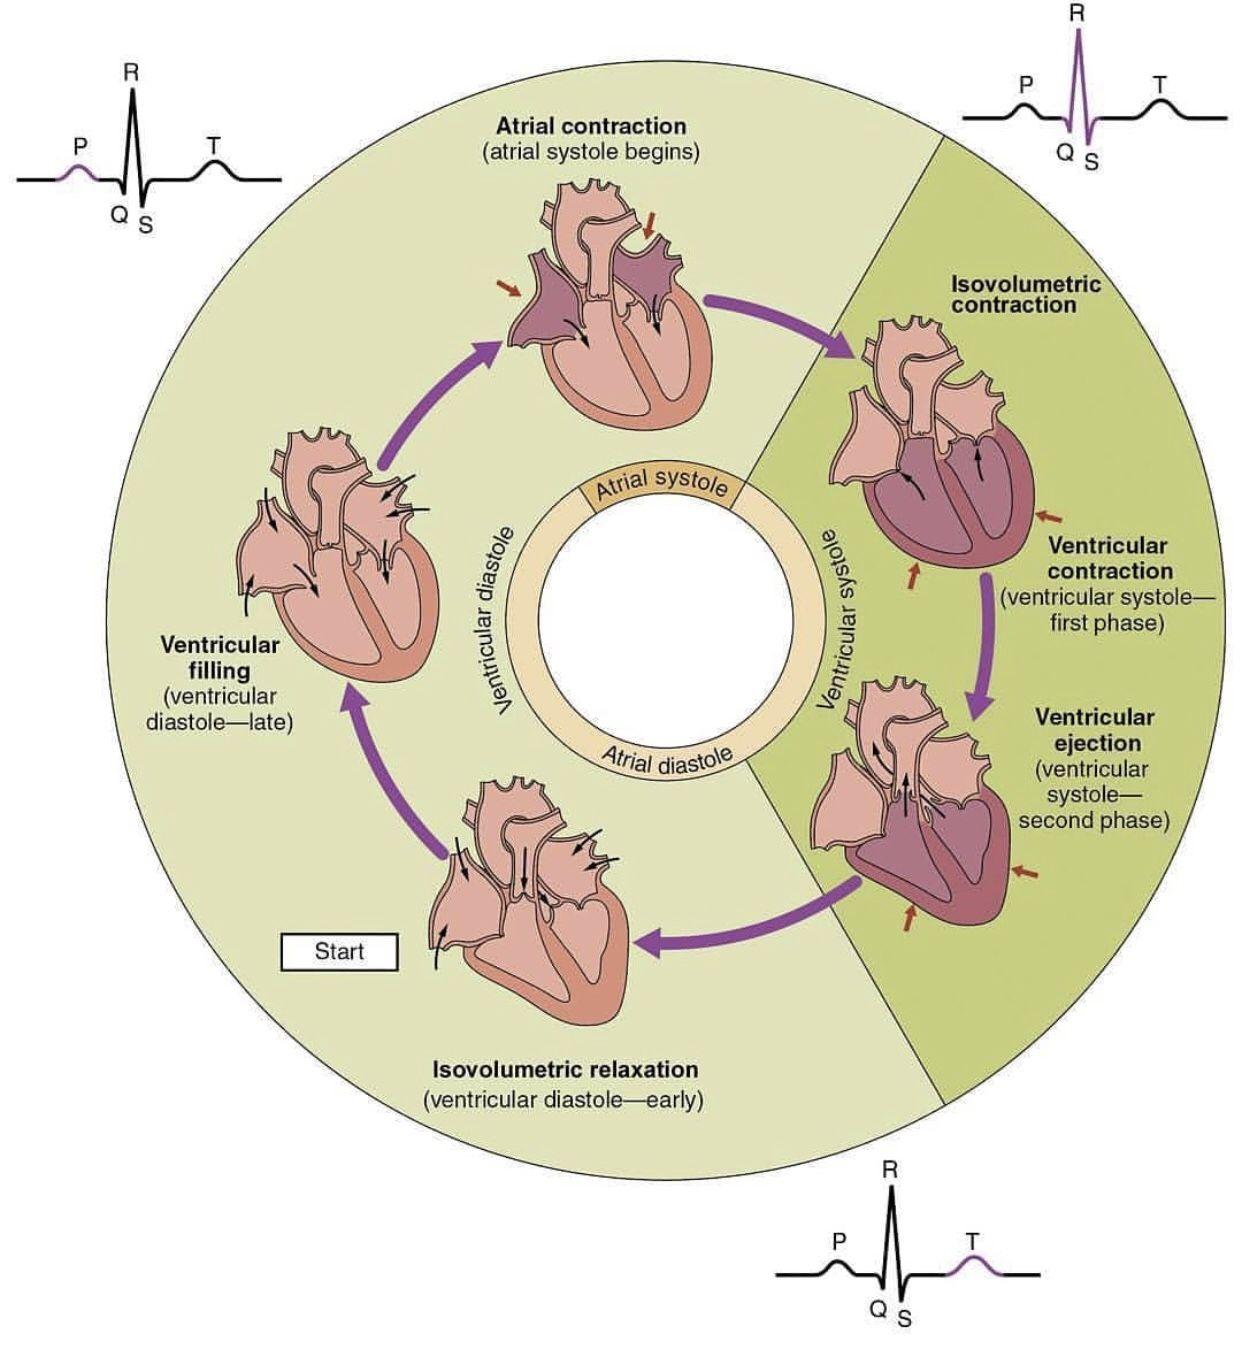 Pin By Andres Sanchez On Cardiology In